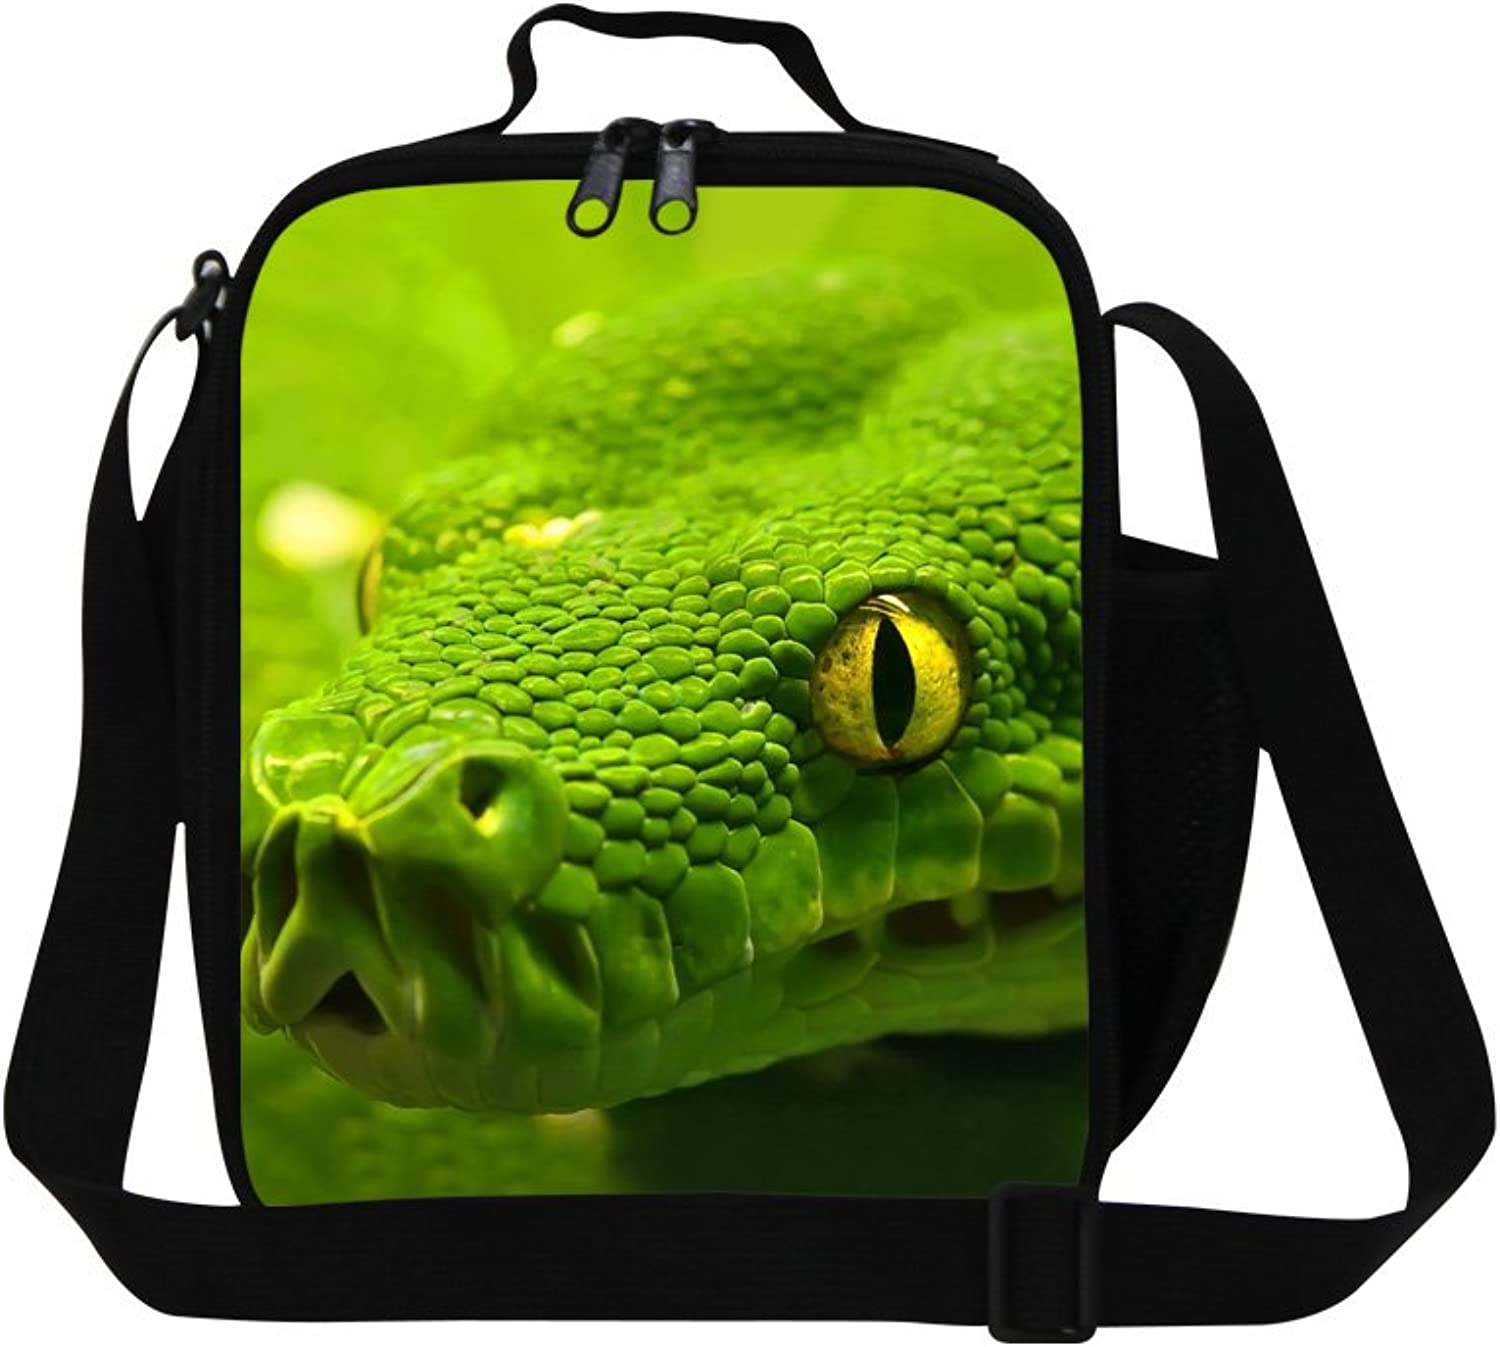 CrazyTravel Picnic Lunch Bag With Water Pocket for School Boy Girl Adult Working Outdoor